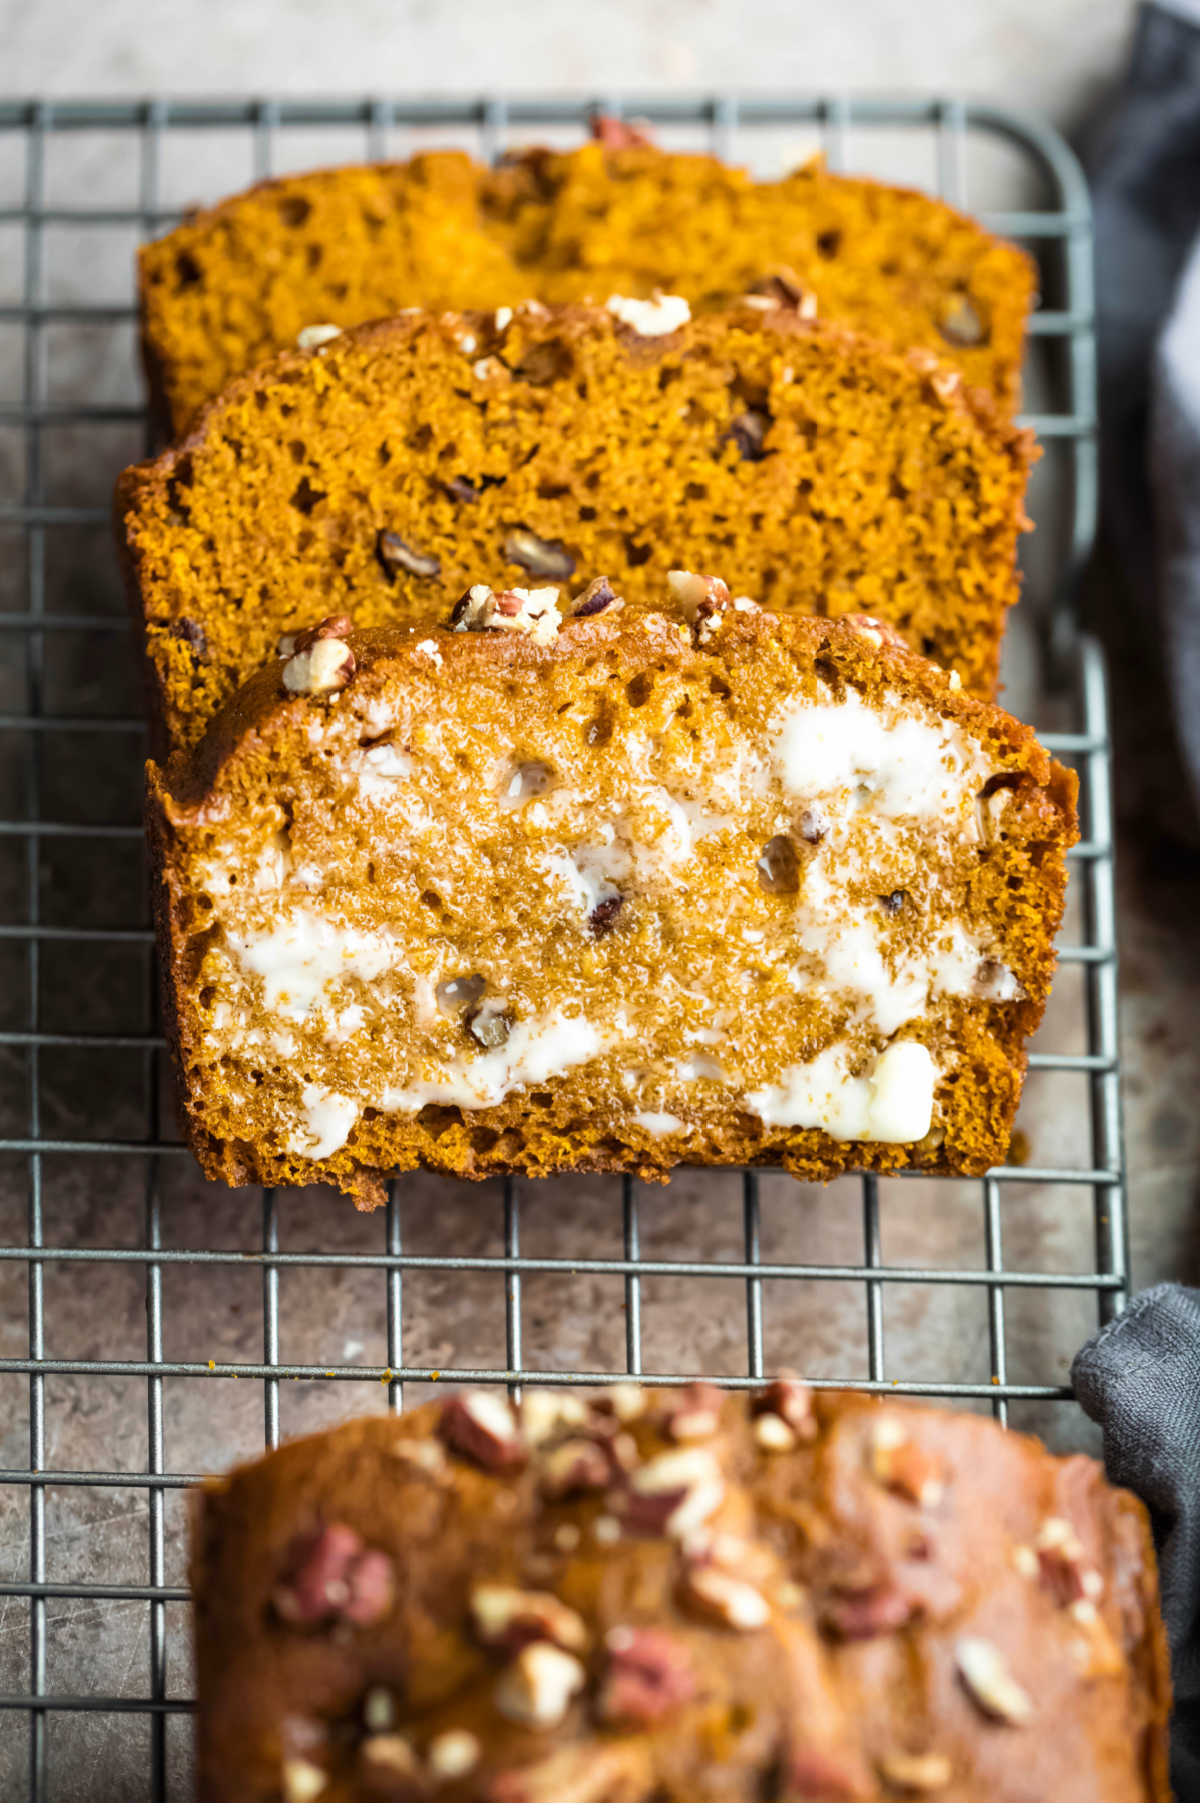 Buttered slice of pumpkin nut bread in a stack.